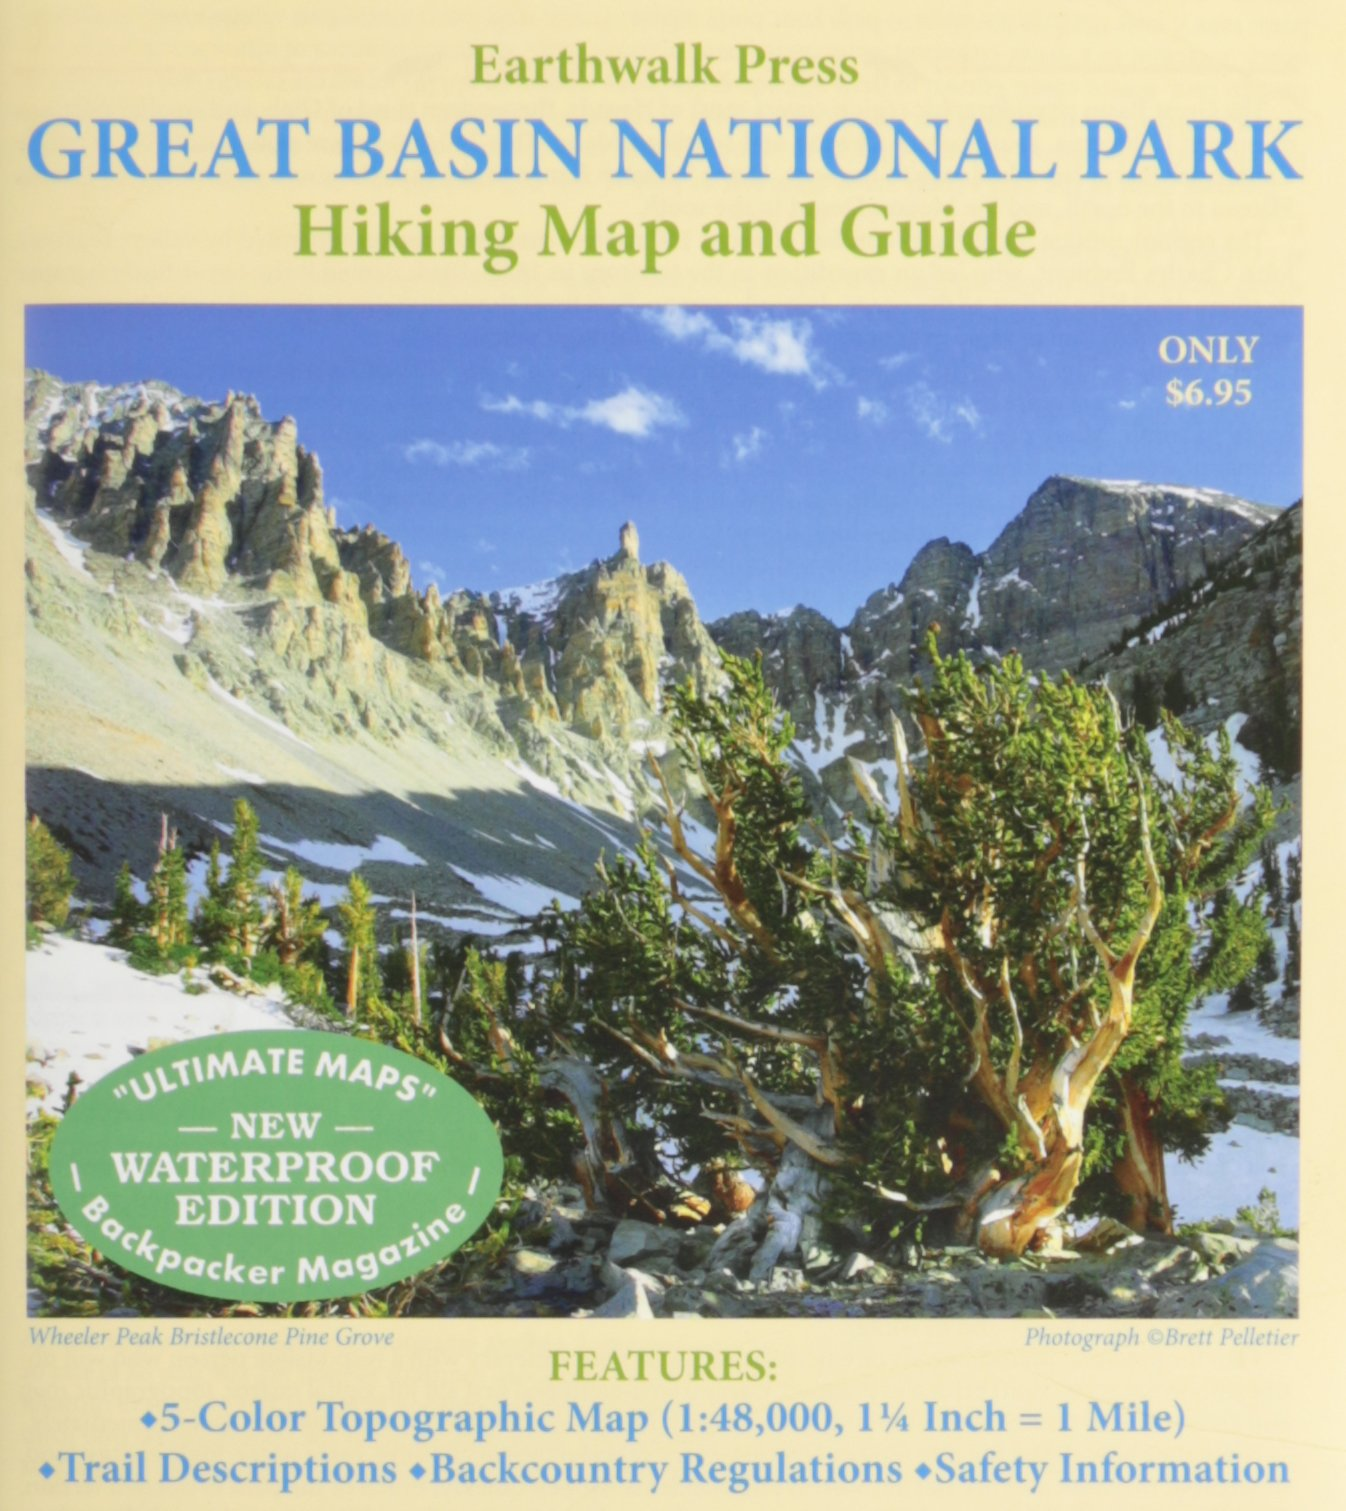 Great Basin National Park Map Hiking Map Guide Earthwalk Press